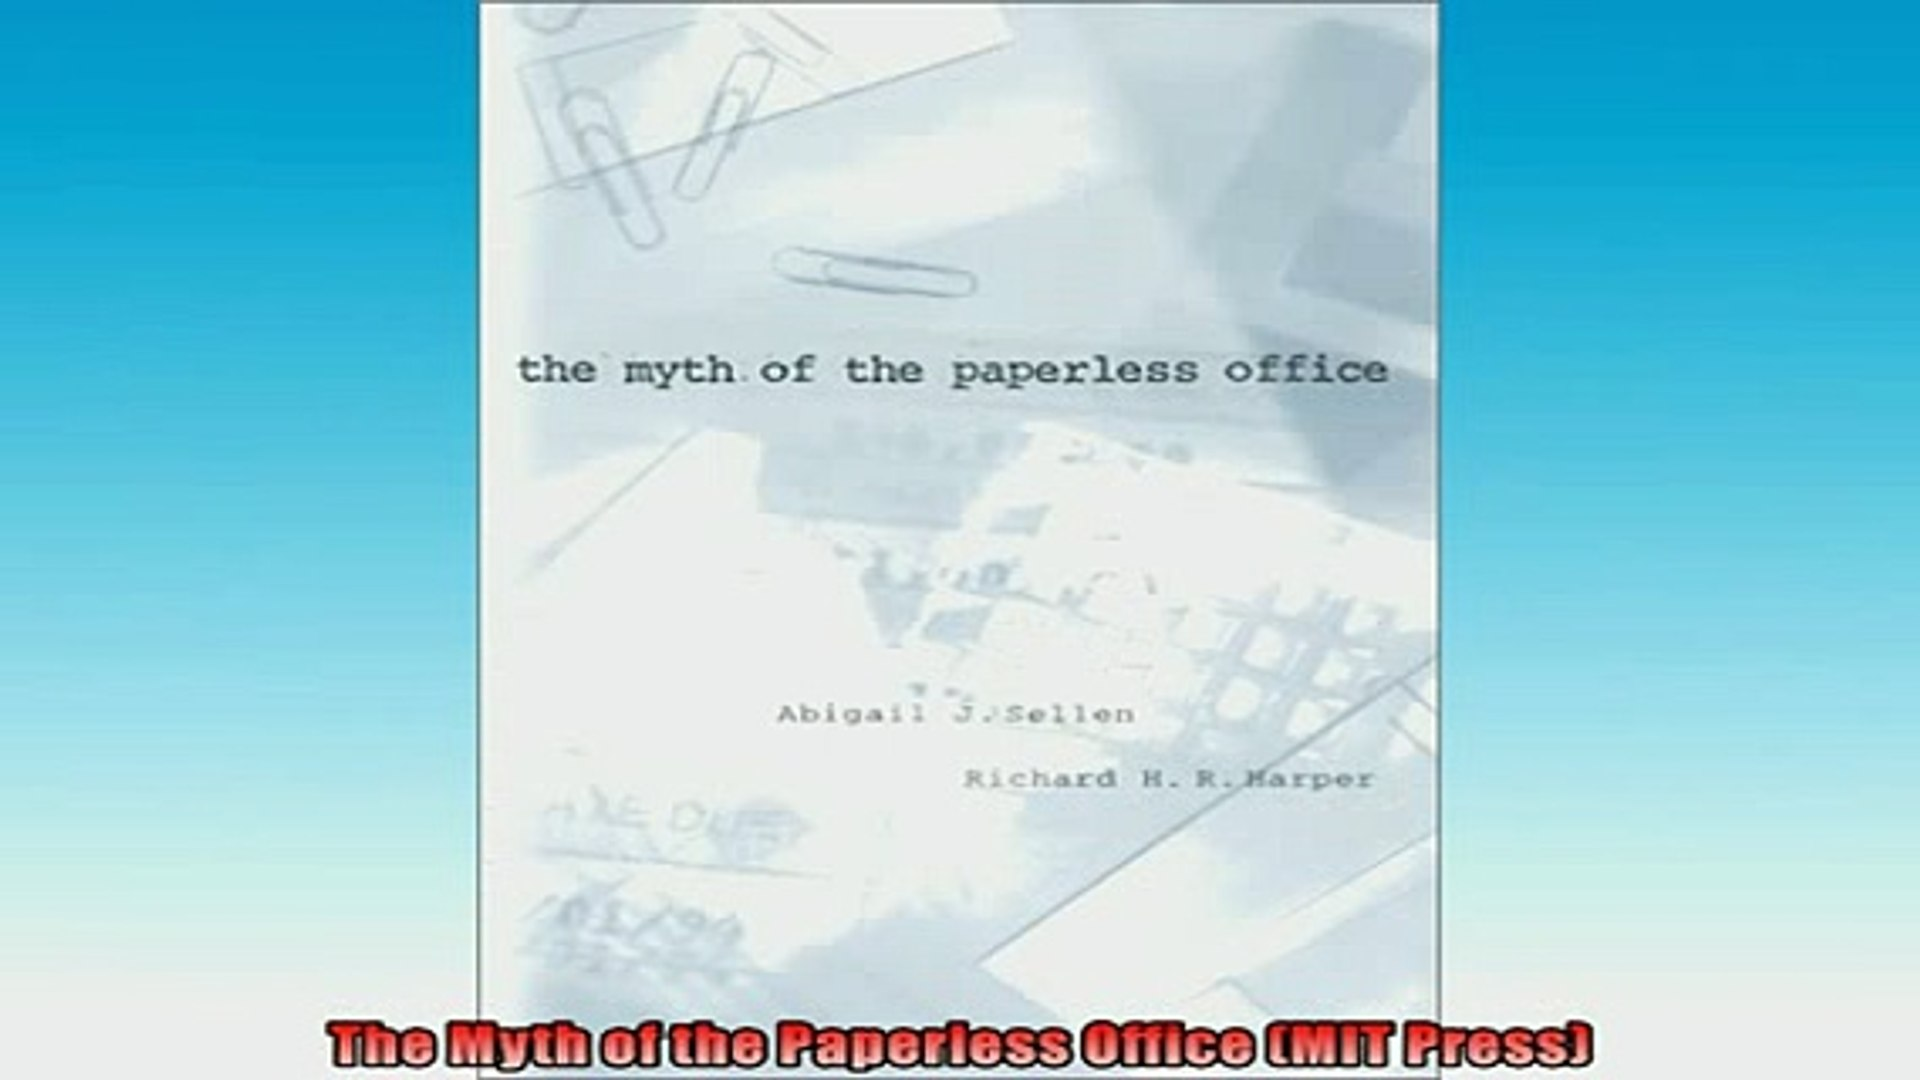 The Myth of the Paperless Office (MIT Press)